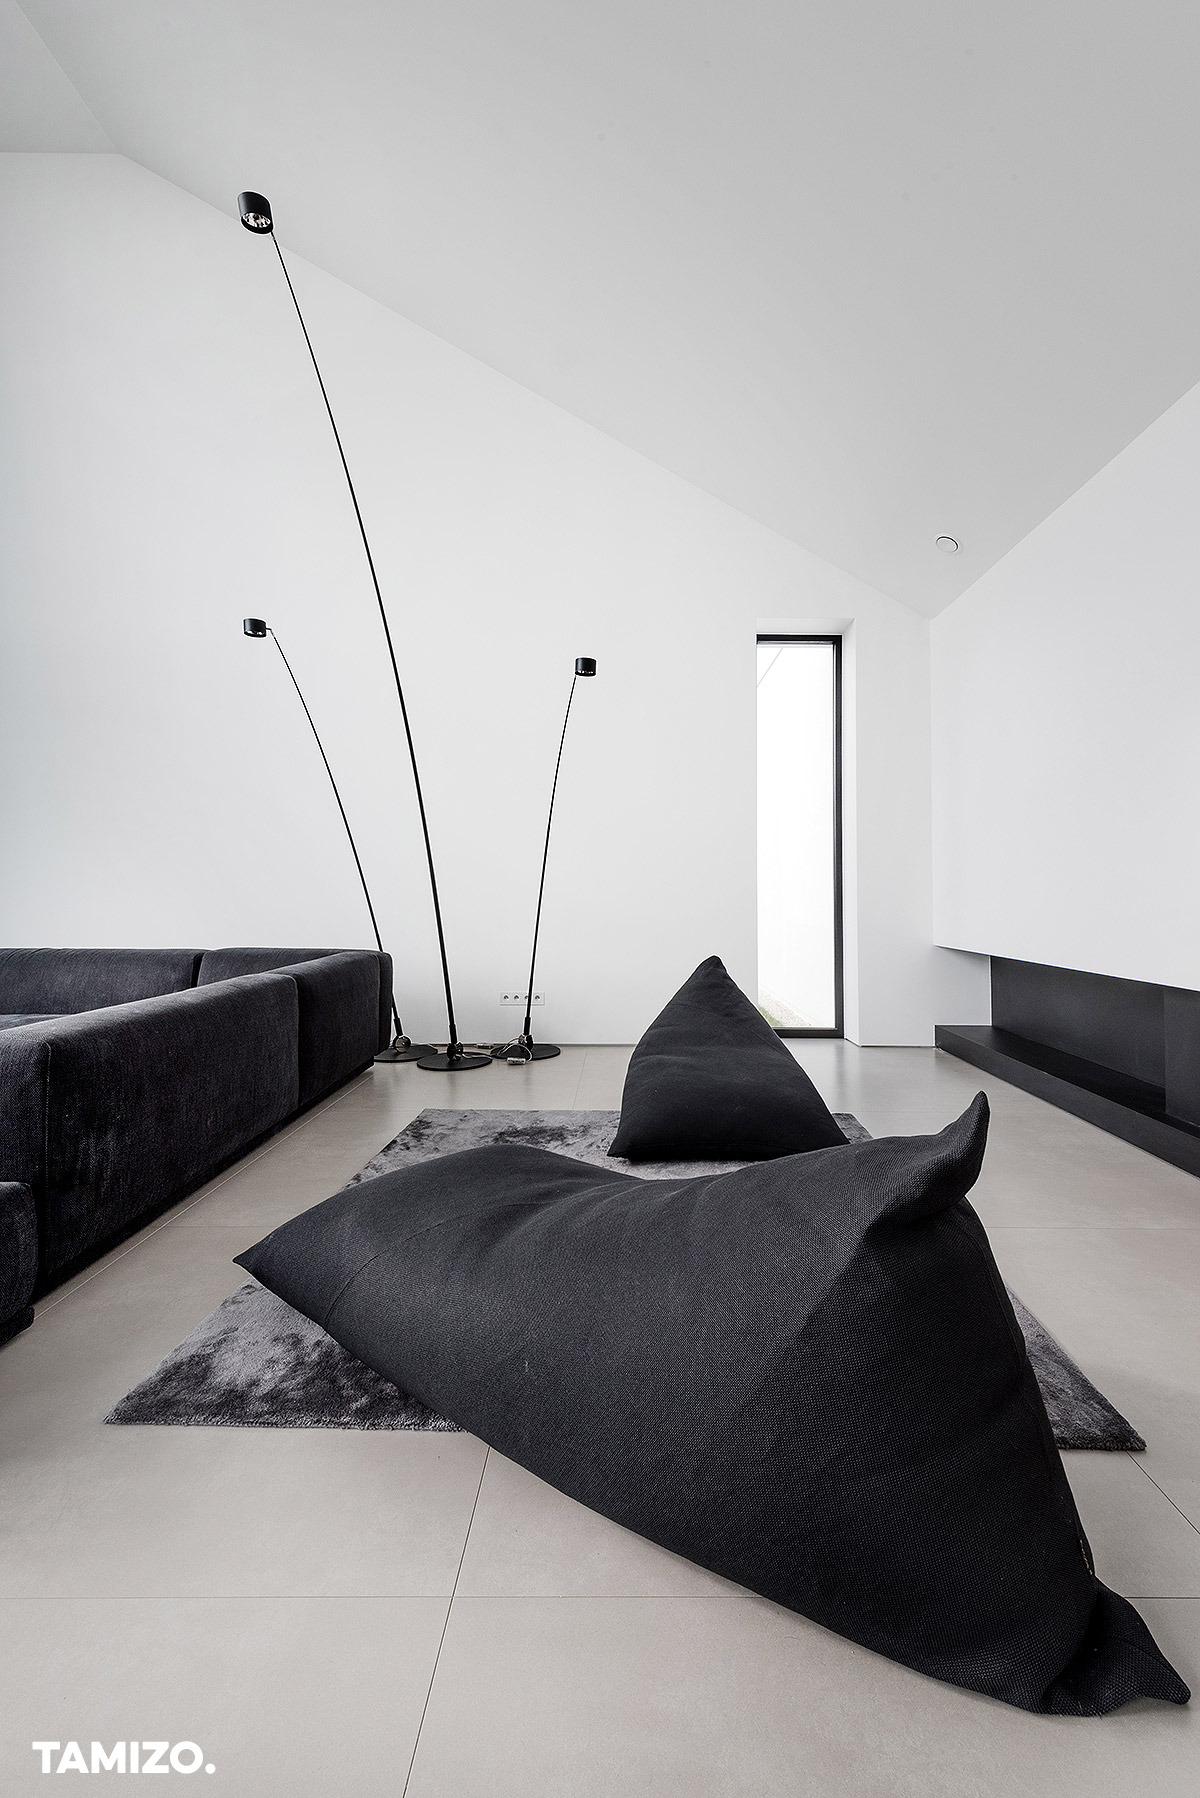 002_tamizo_architects_interior_house_realization_warsaw_poland_08